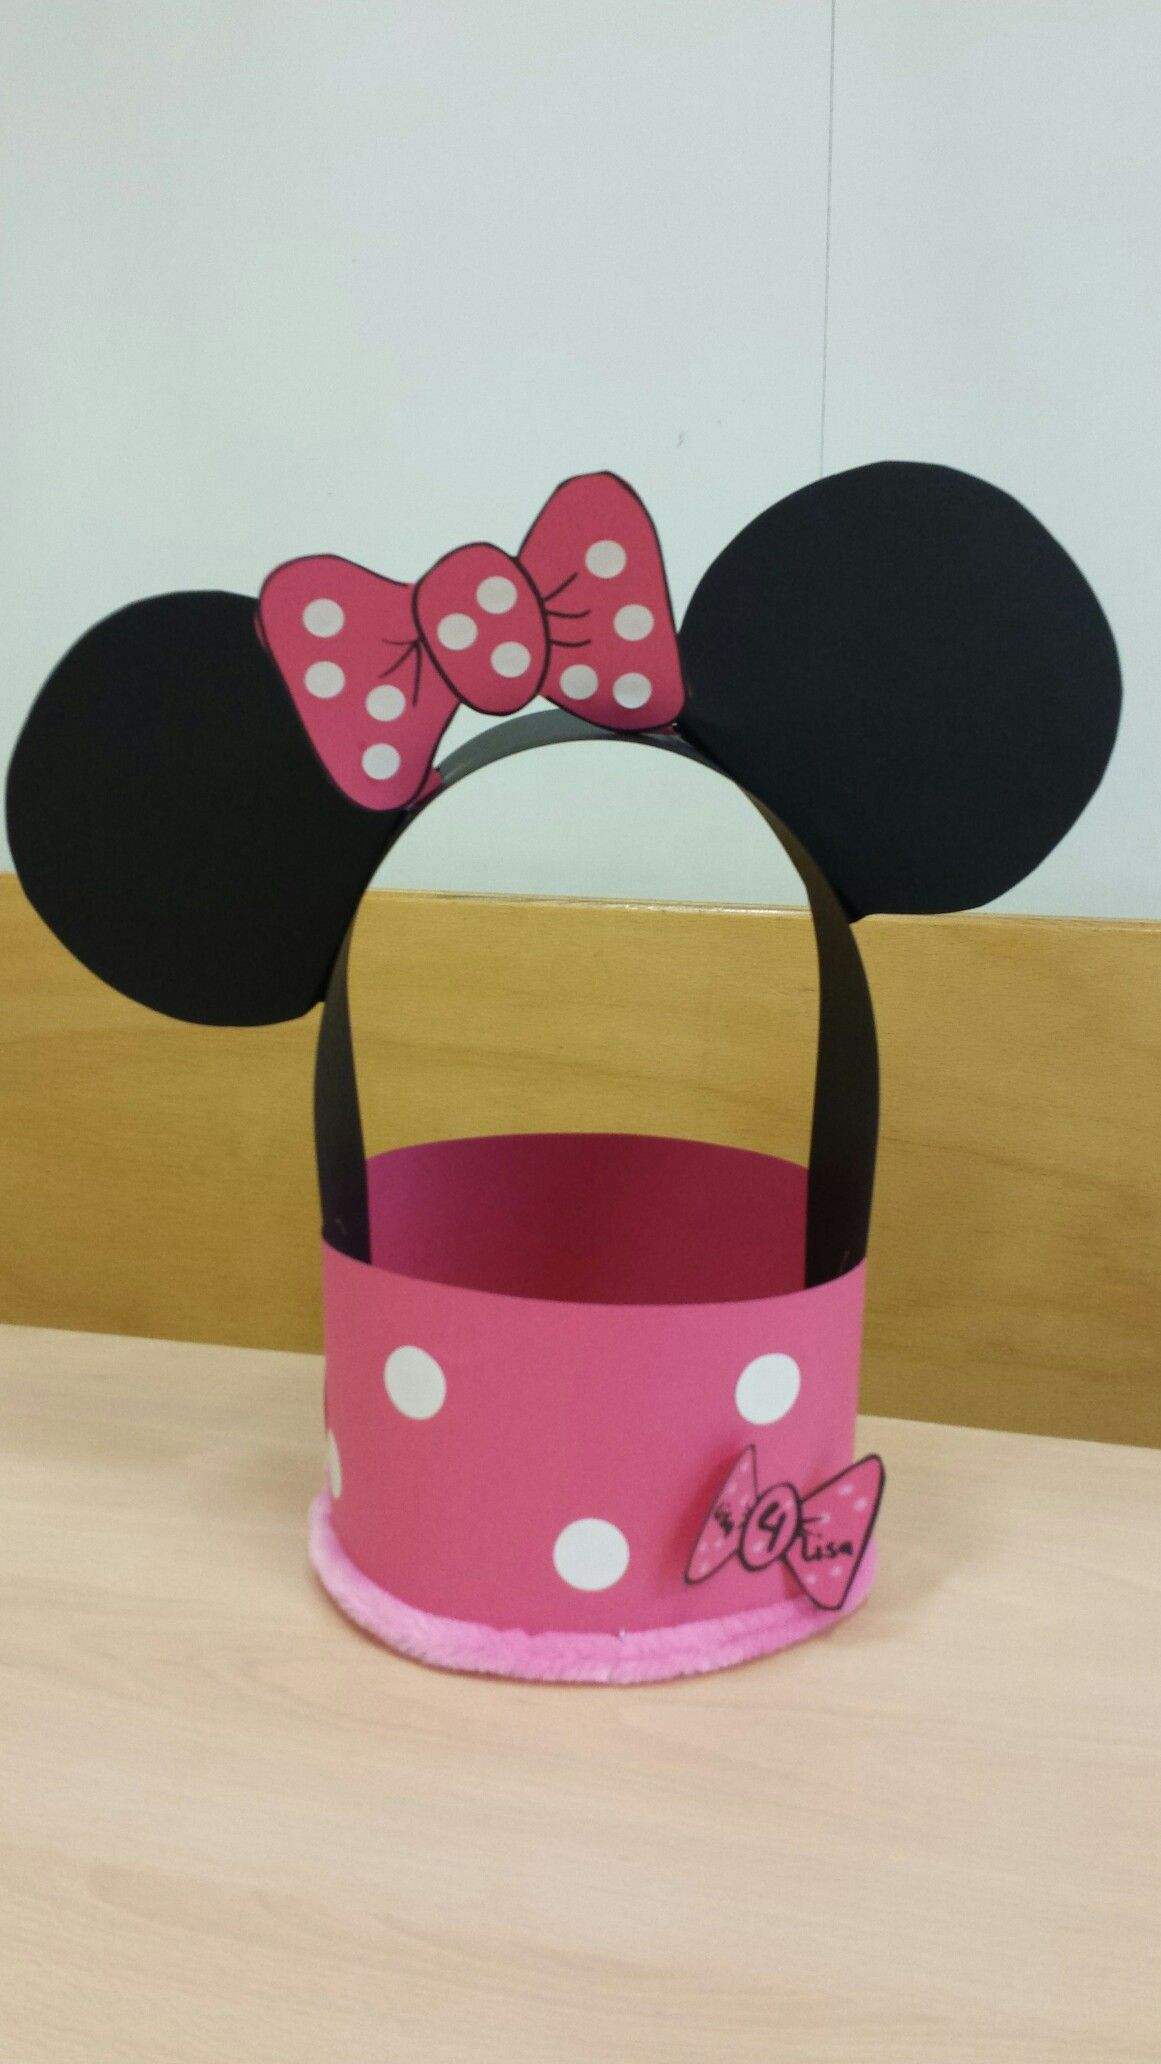 Populair Minnie mouse kroon | lexicon lws | Pinterest | School, Mice and Craft @SF88